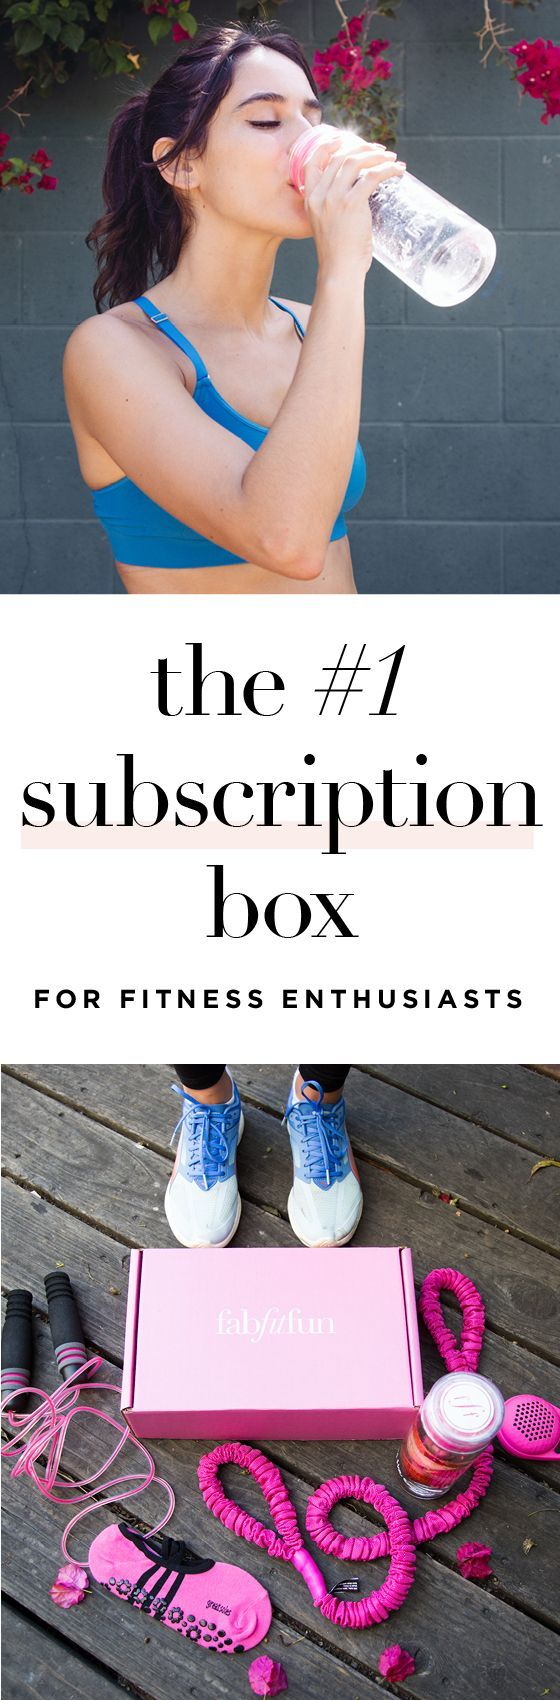 Break hearts, not the bank! Treat yourself to a box of full-size fitness, beauty, and fashion products worth over $200, for just $39.99 with code YES. Hurry, this sale won't last long. FREE shipping in the US.